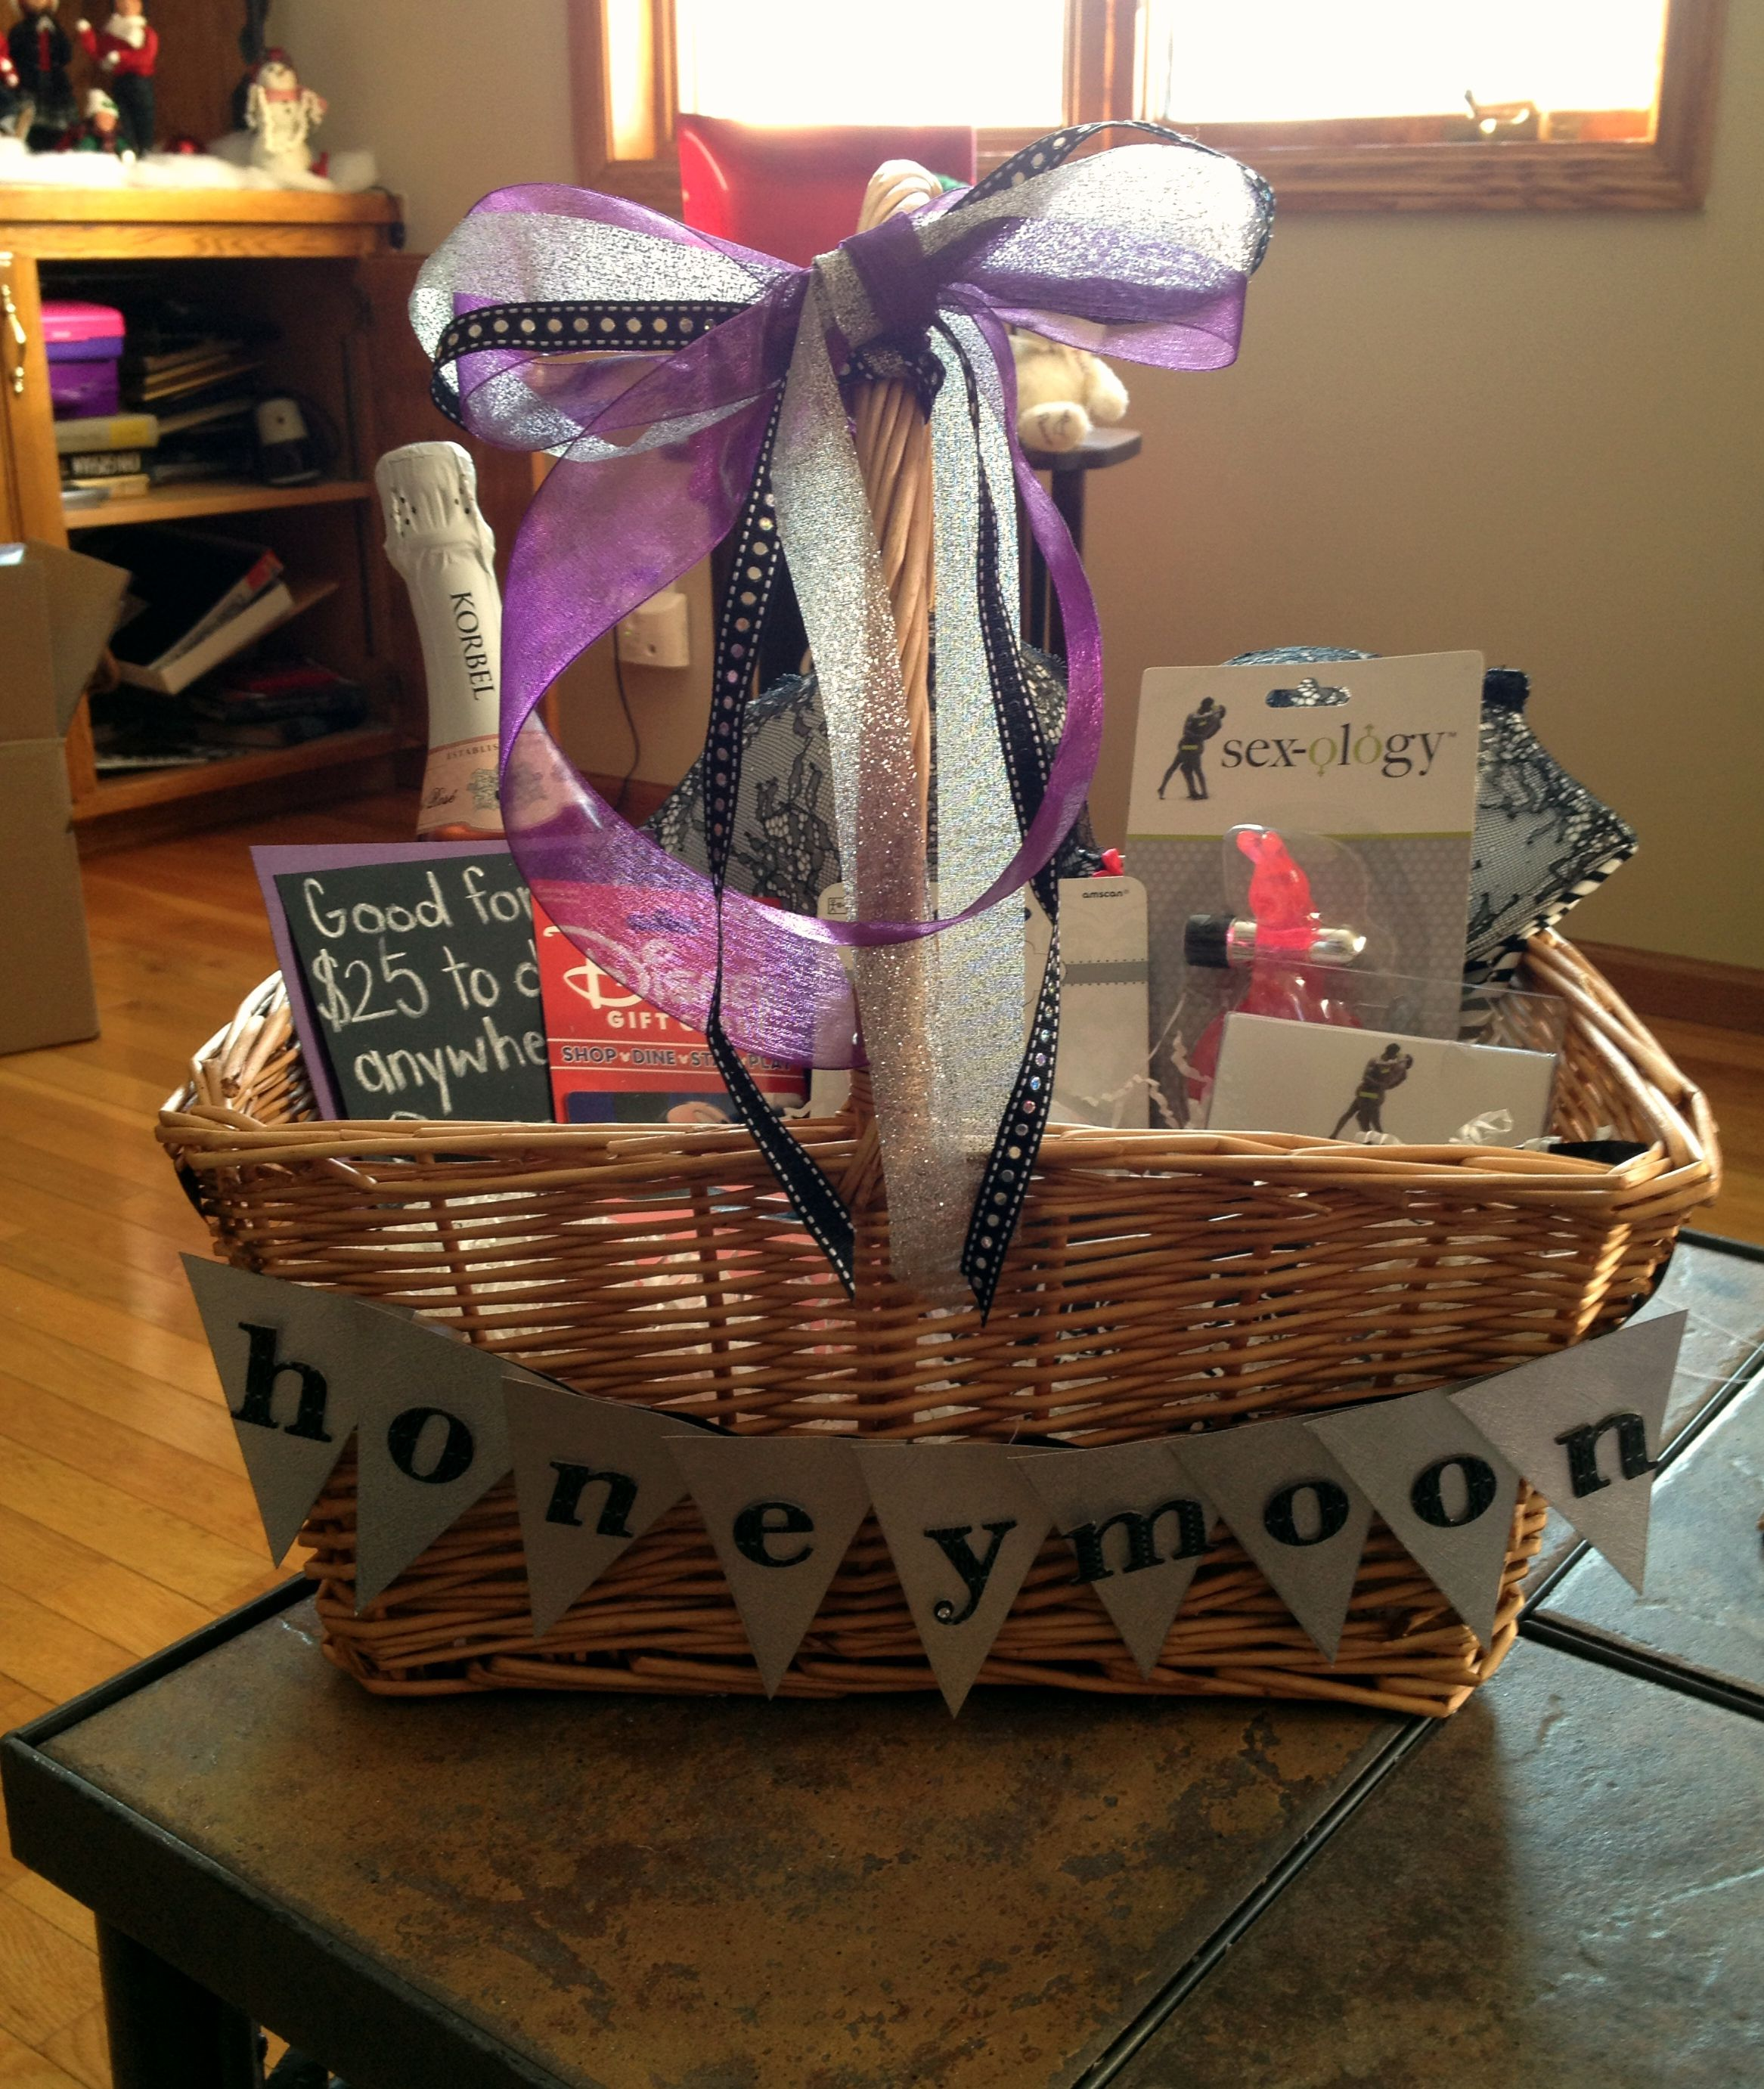 Diy Wedding Gift Basket Ideas: DIY Honeymoon Gift Basket!